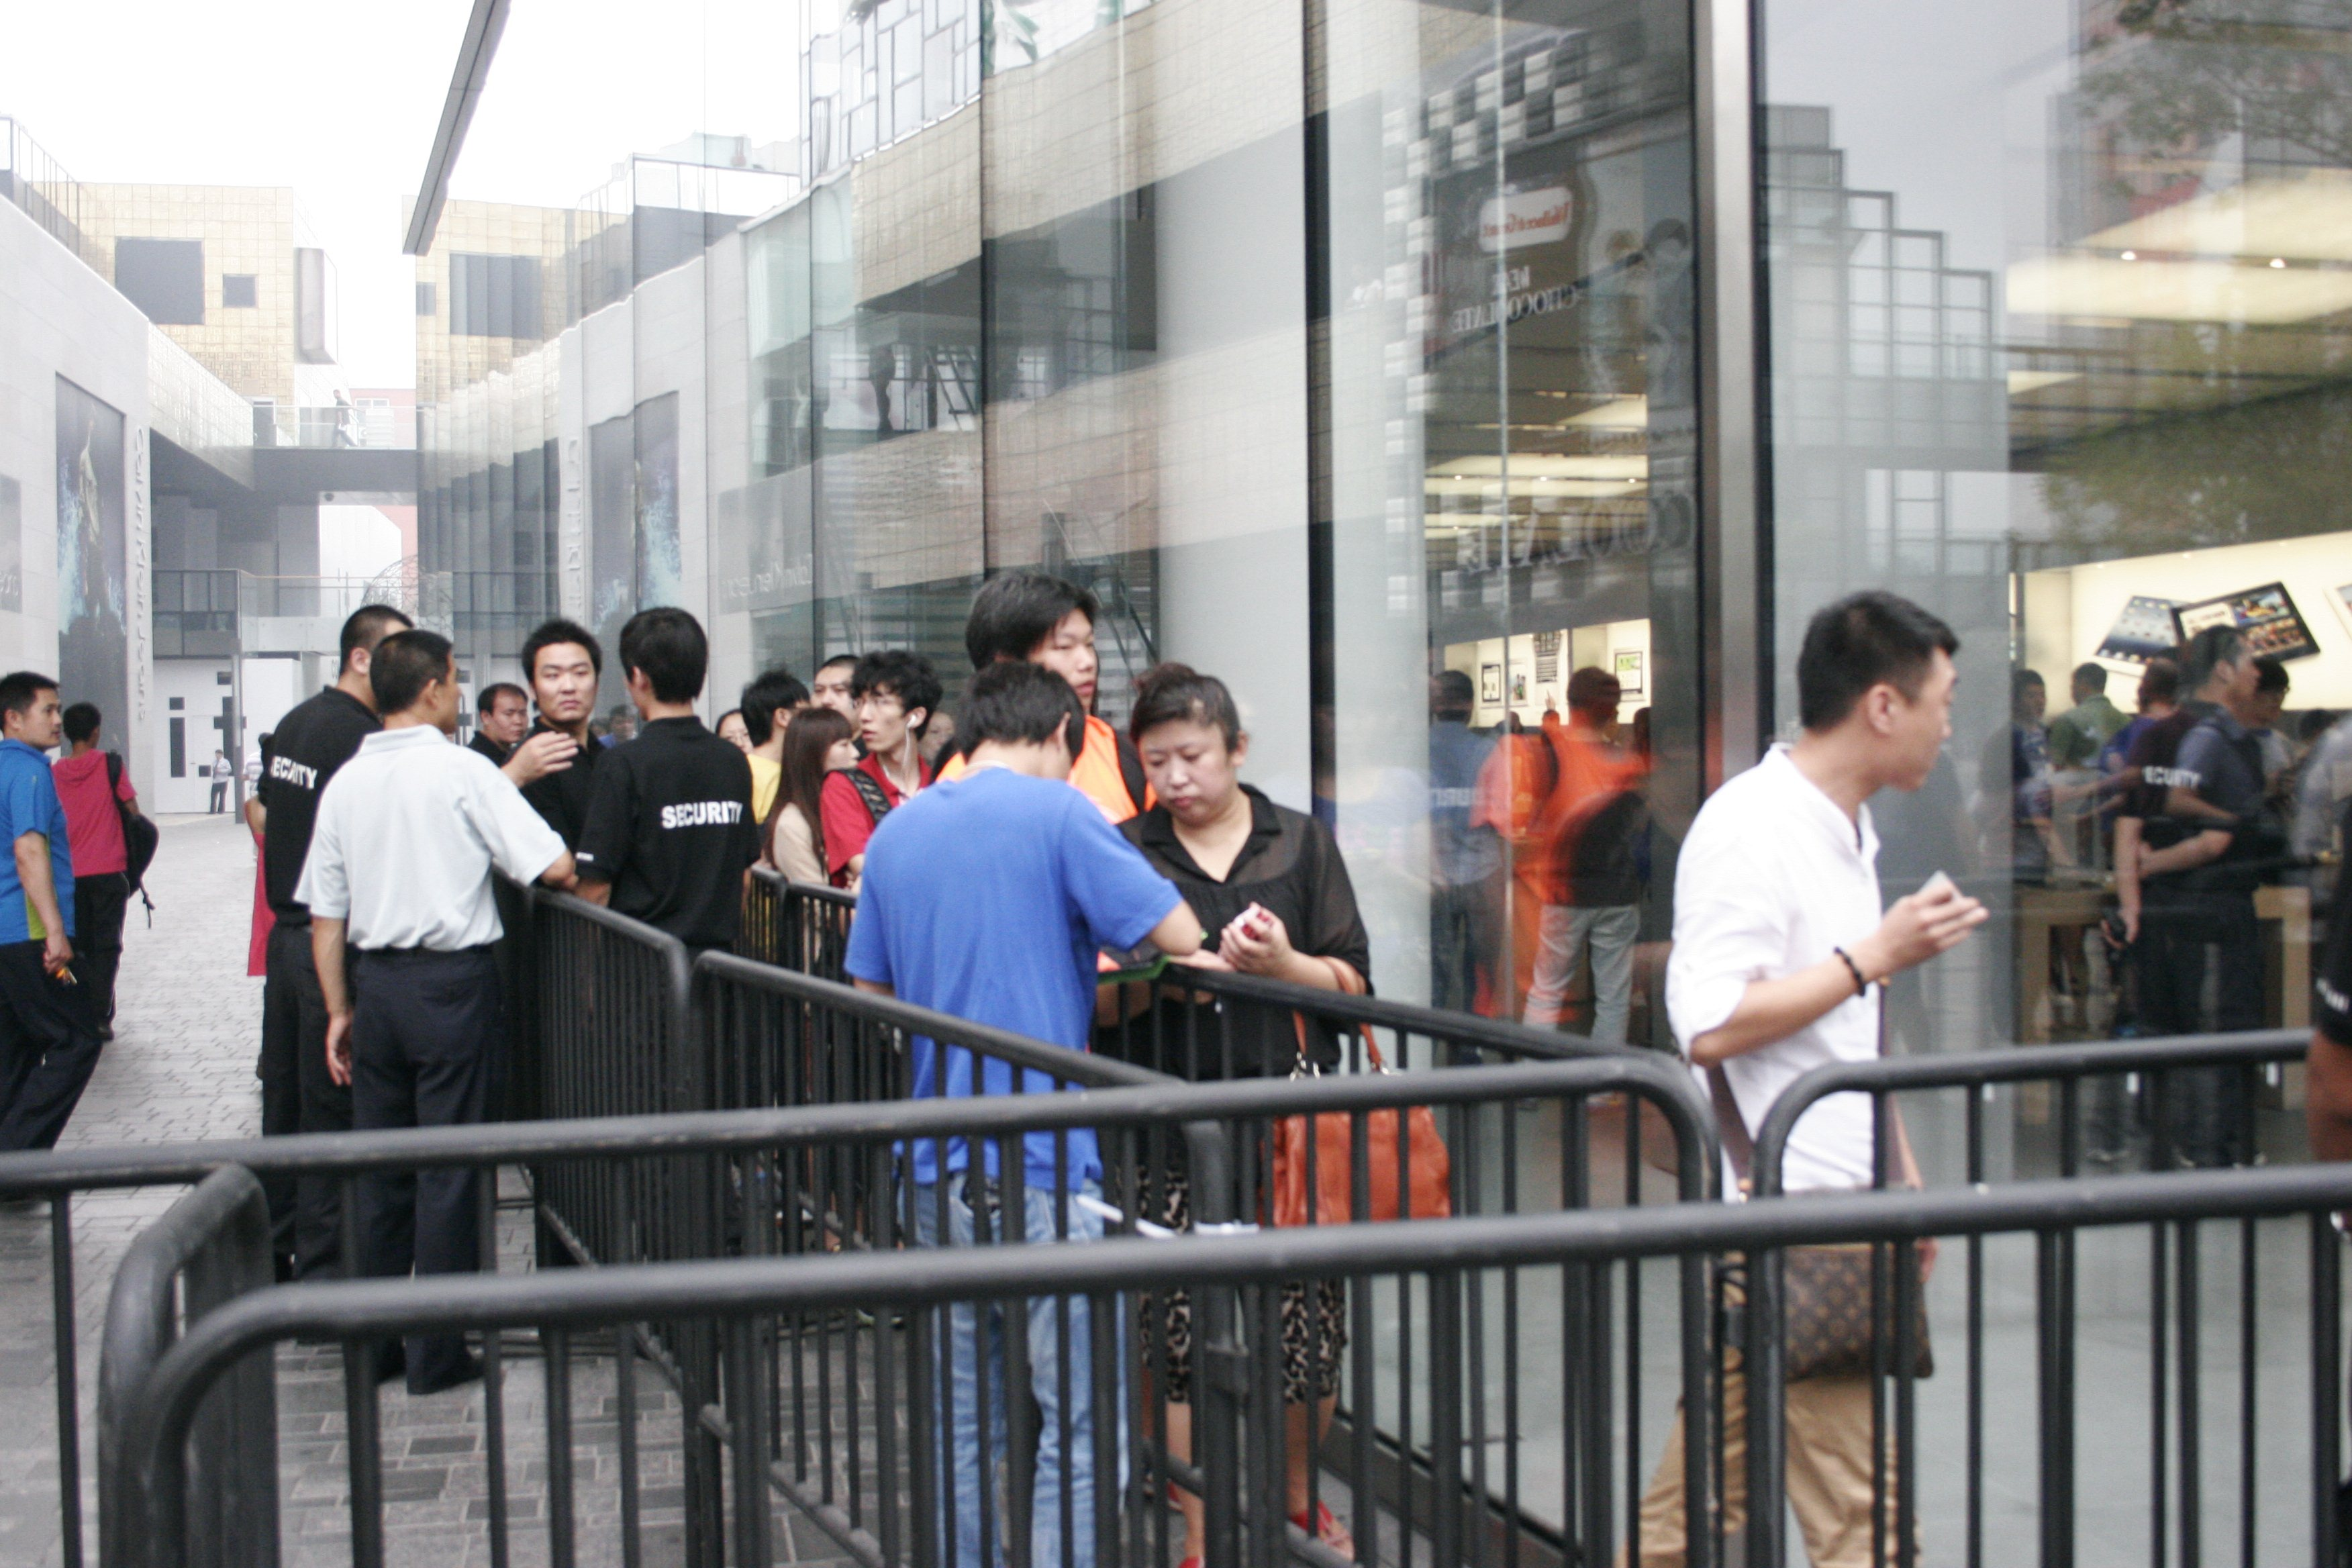 Apple's new iPad launches in China with short queues and no chaos